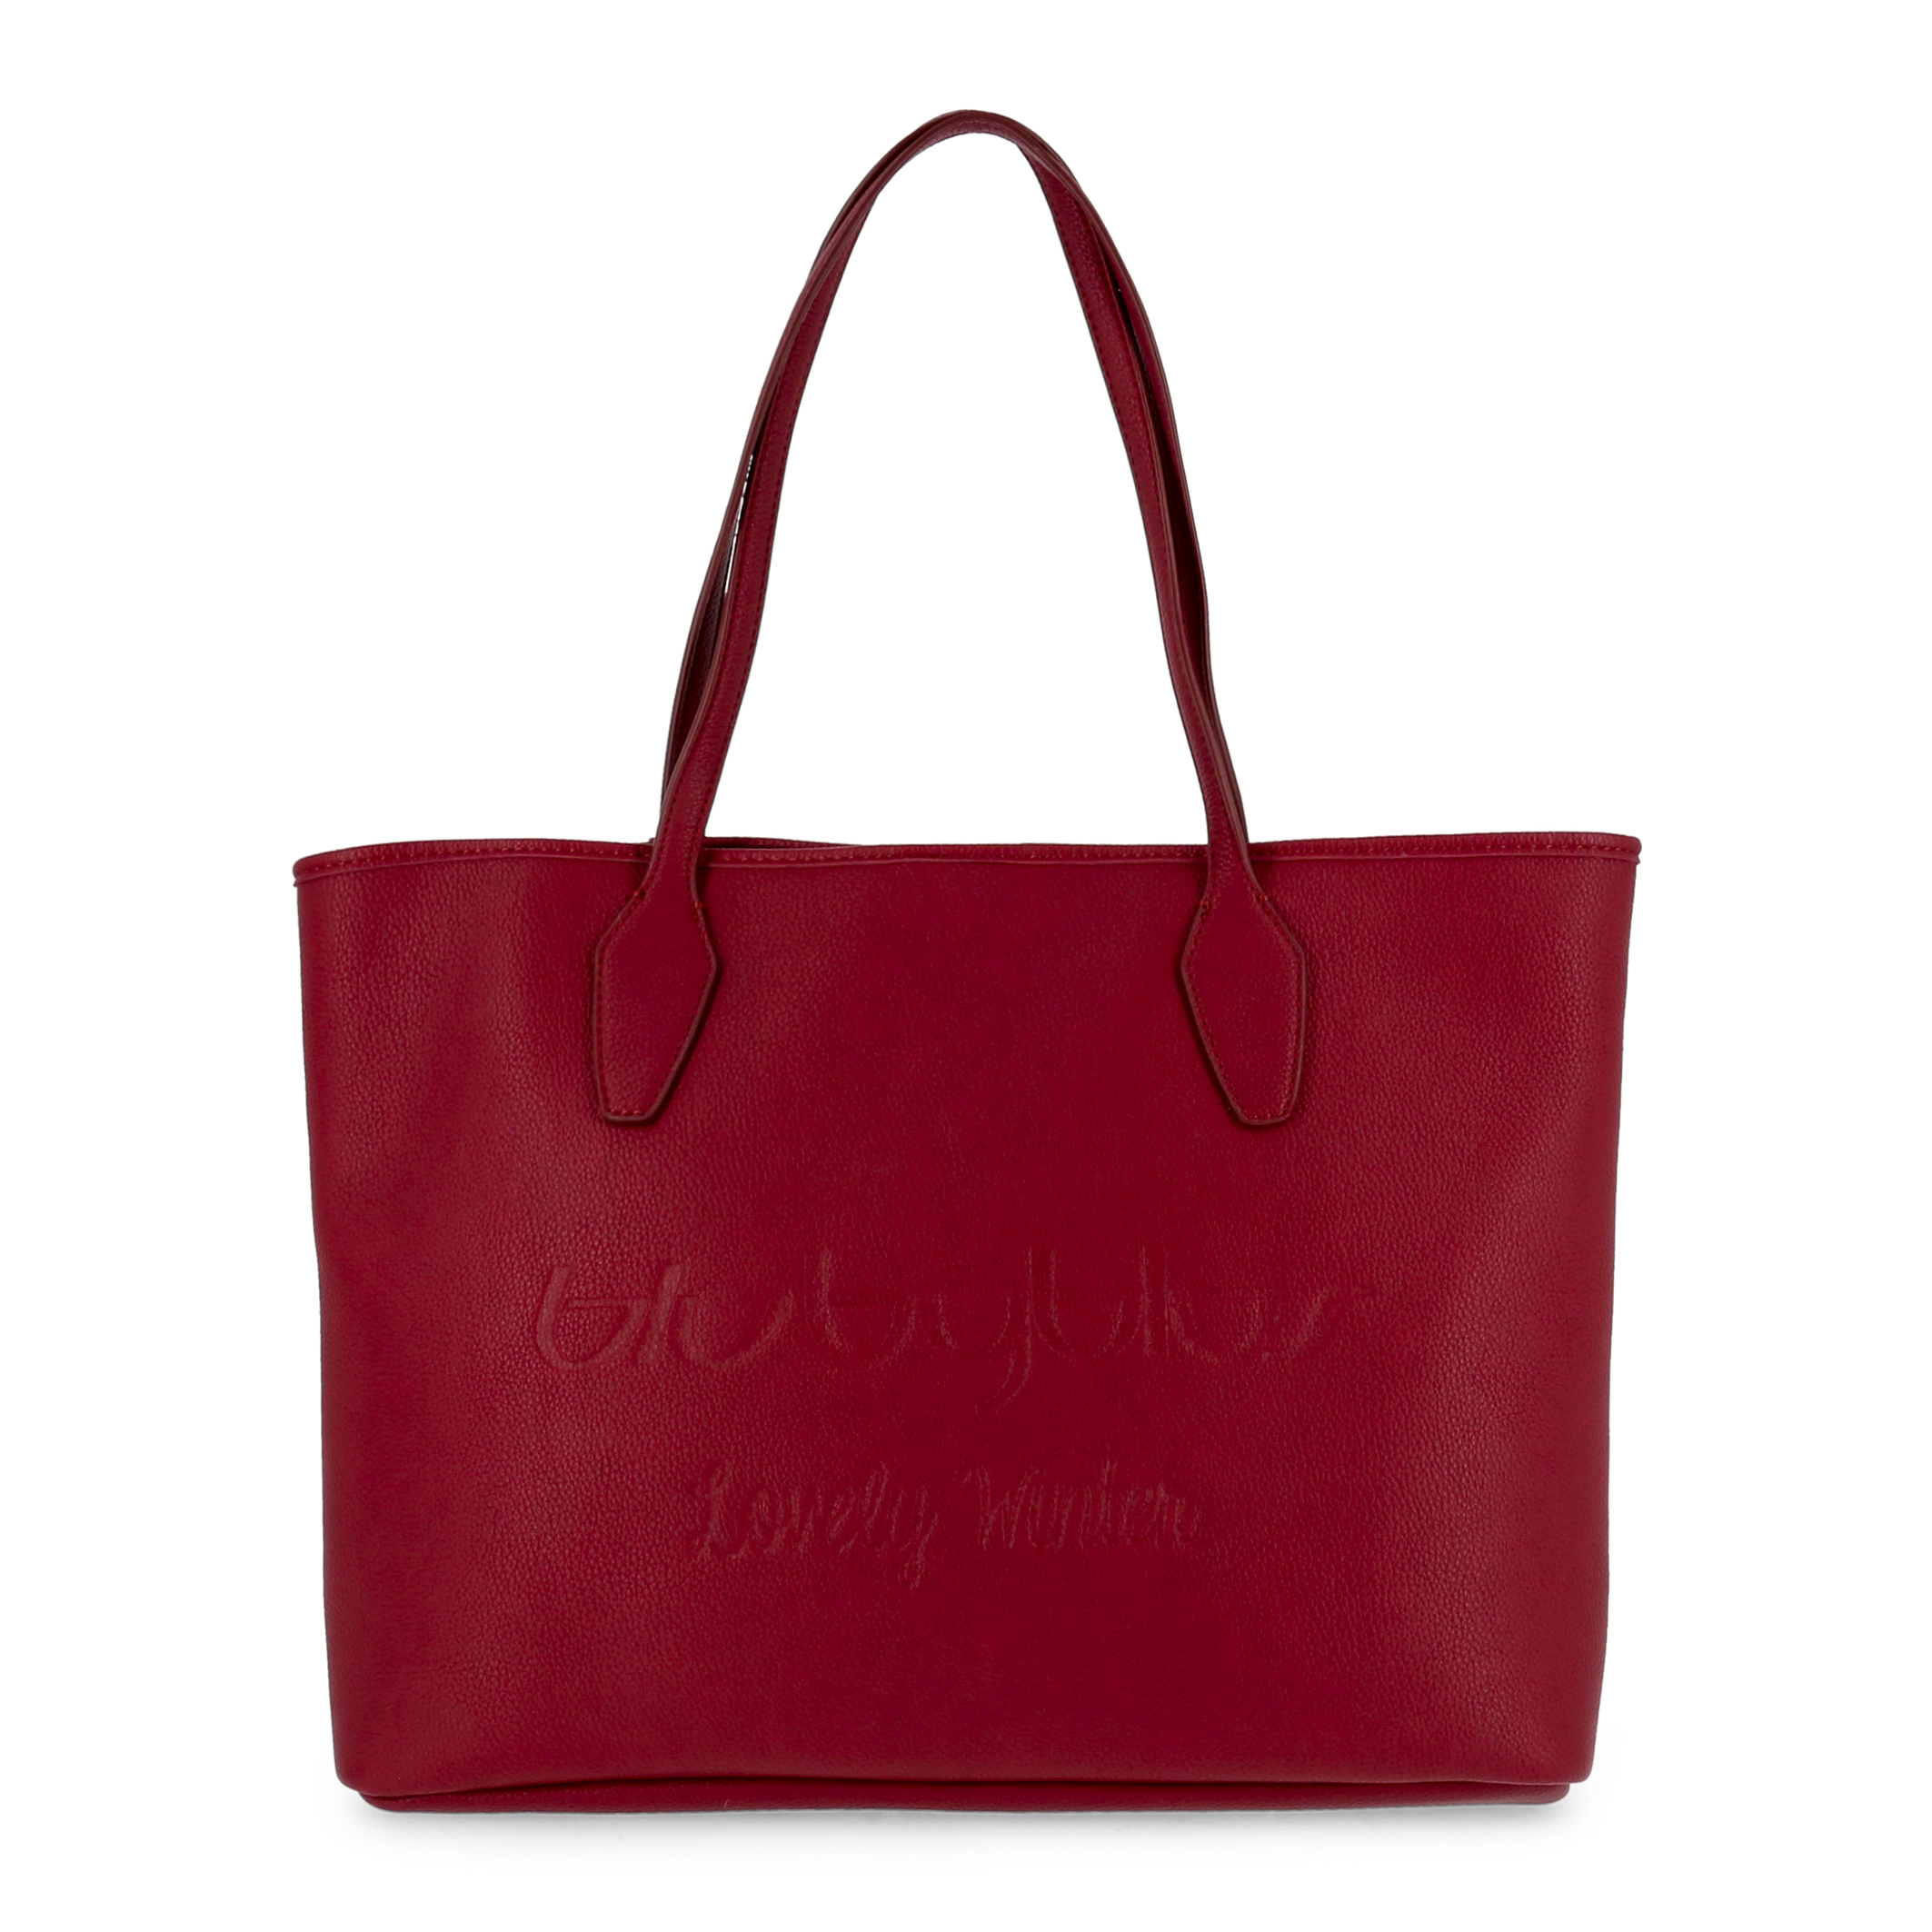 Shopping bag Blu Byblos LOVELYWINTER_685900 Donna Rosso 95123